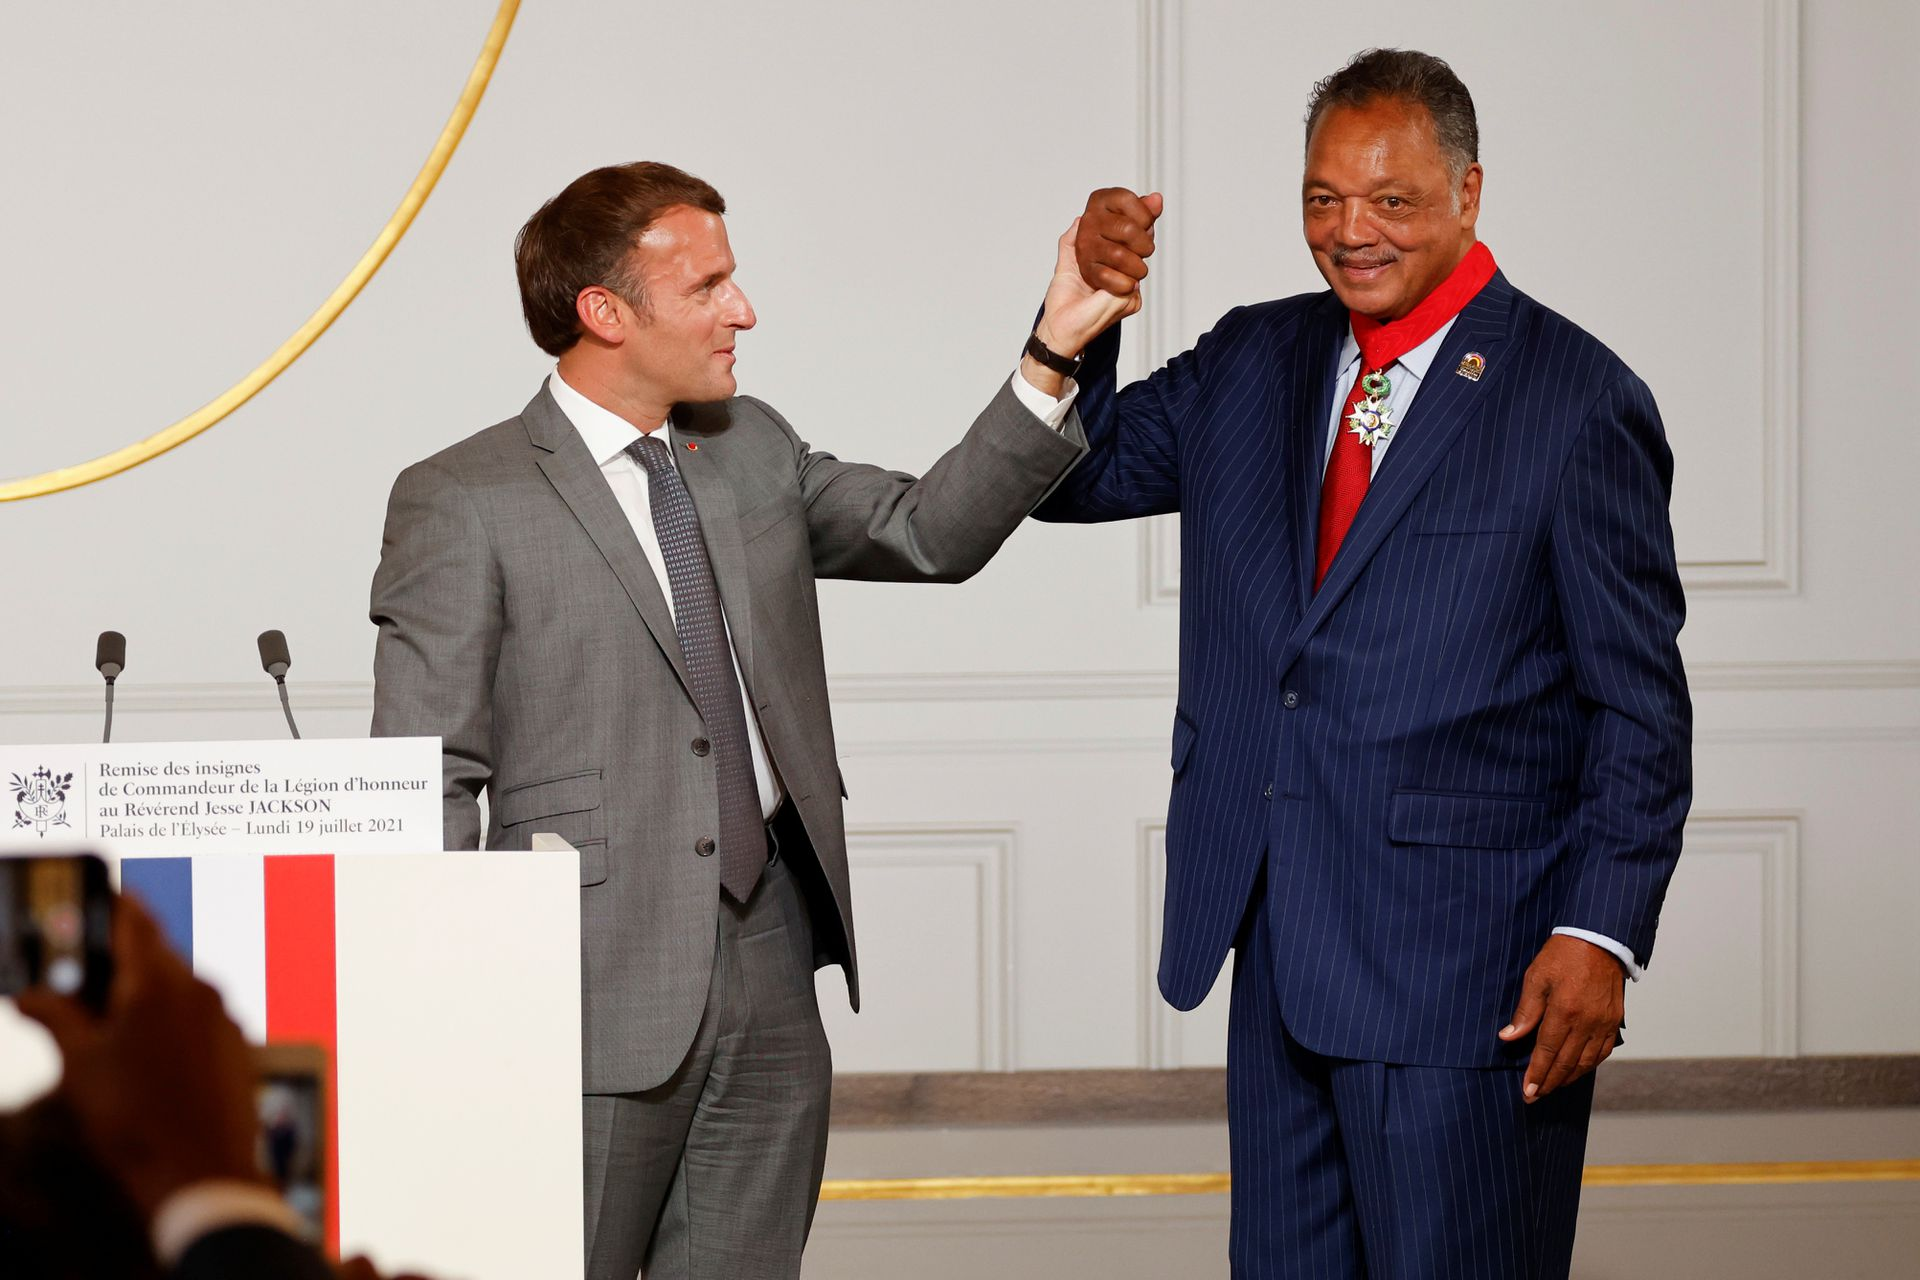 France Honors Jesse Jackson With Legion d'Honneur for 'Long Walk Towards Emancipation and Justice'